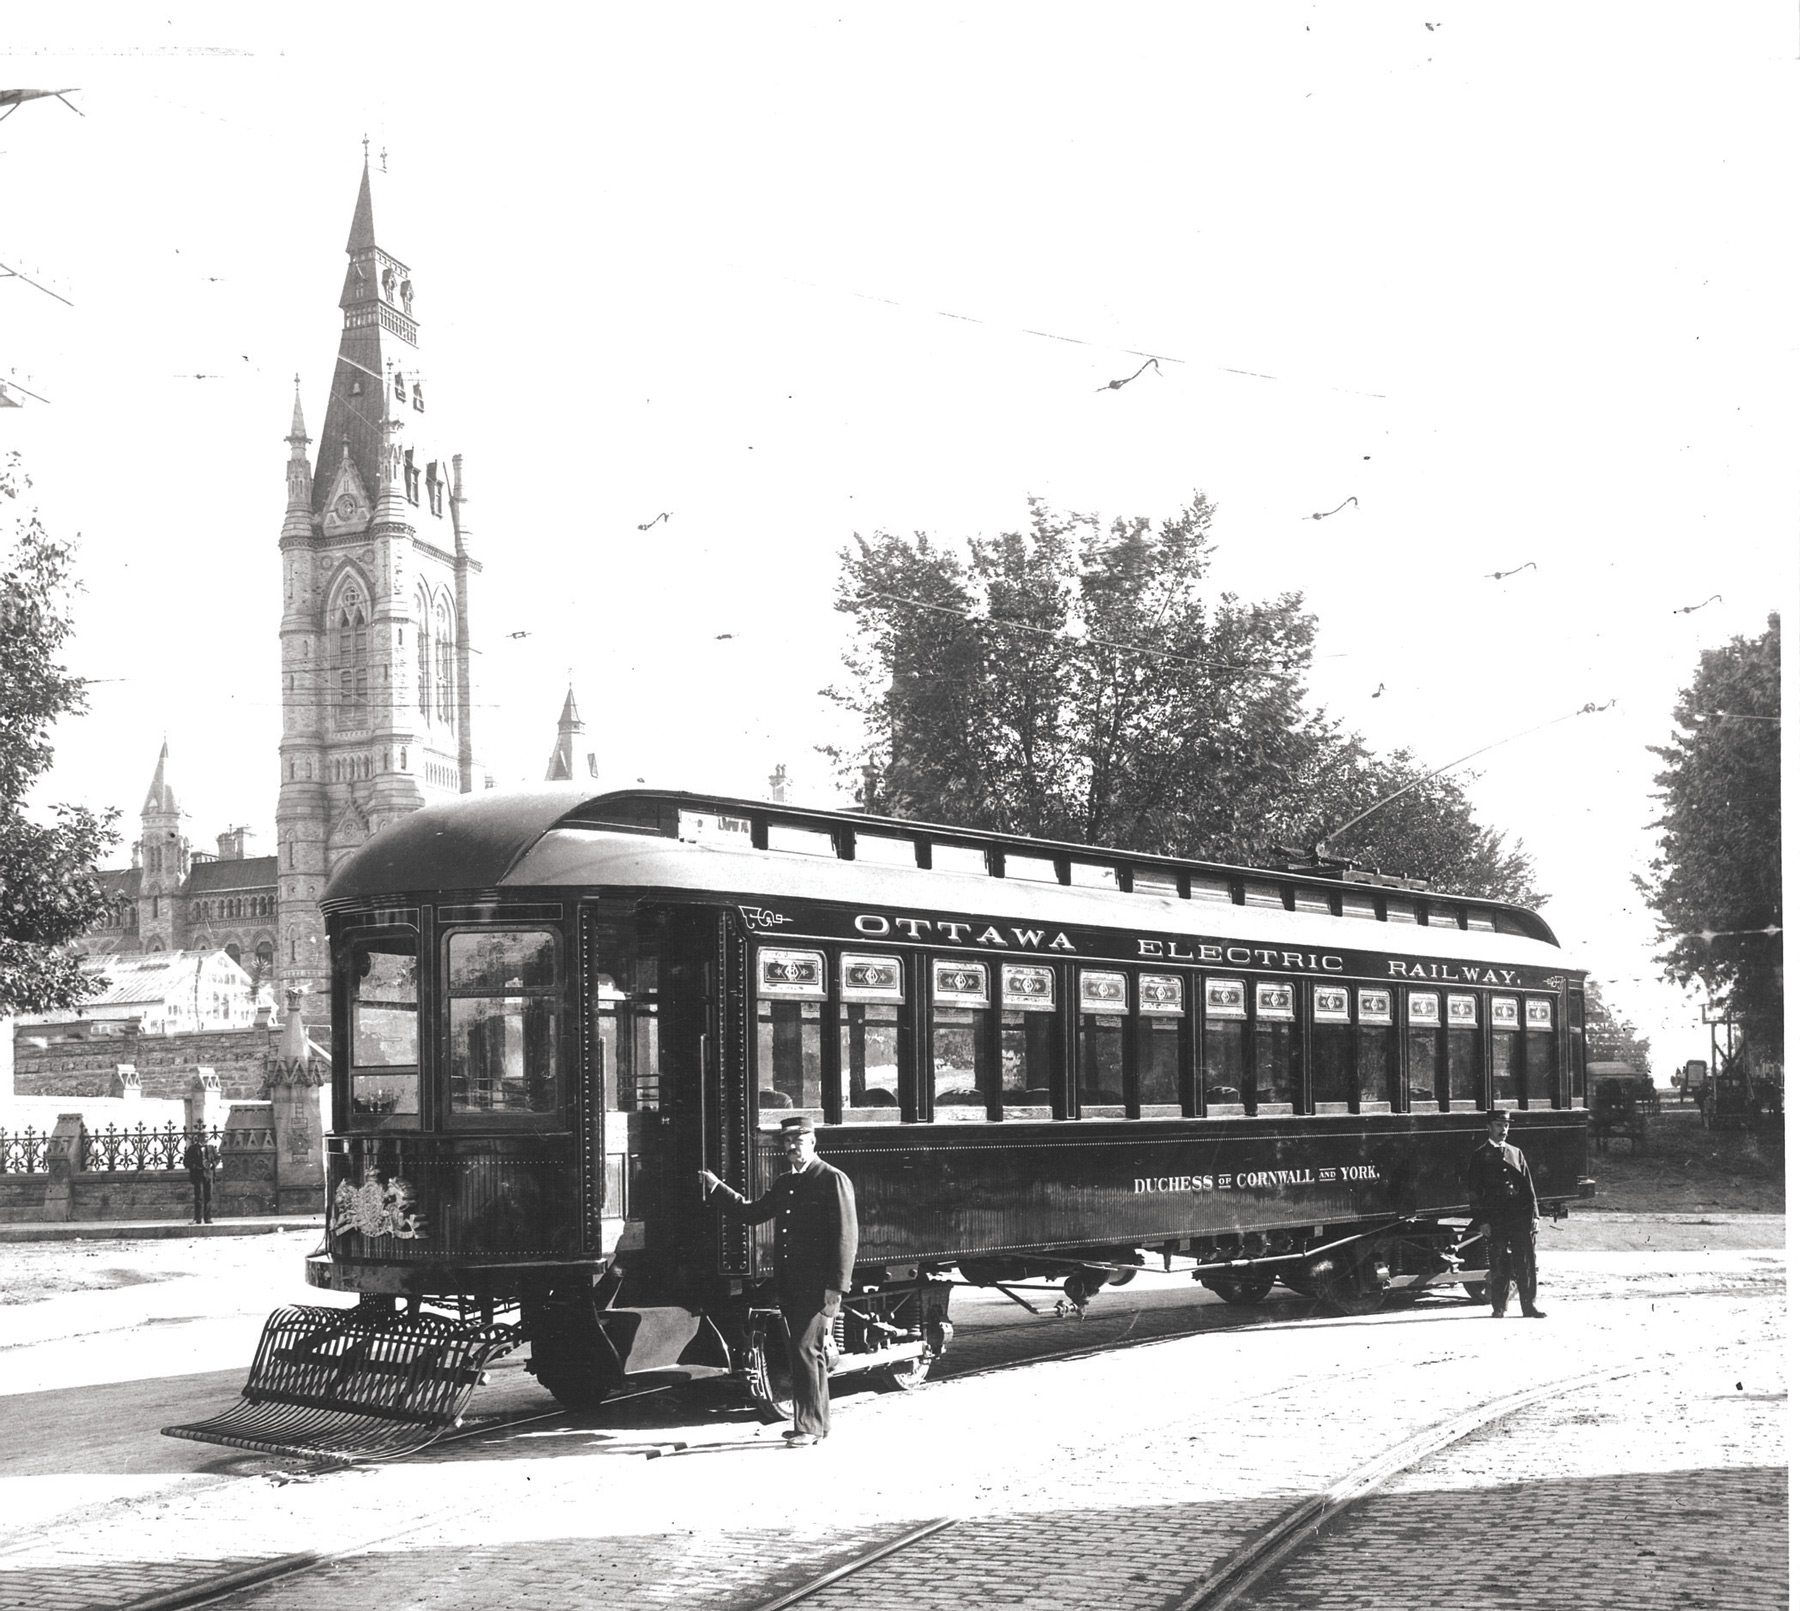 City of Ottawa Archives/CA-0166